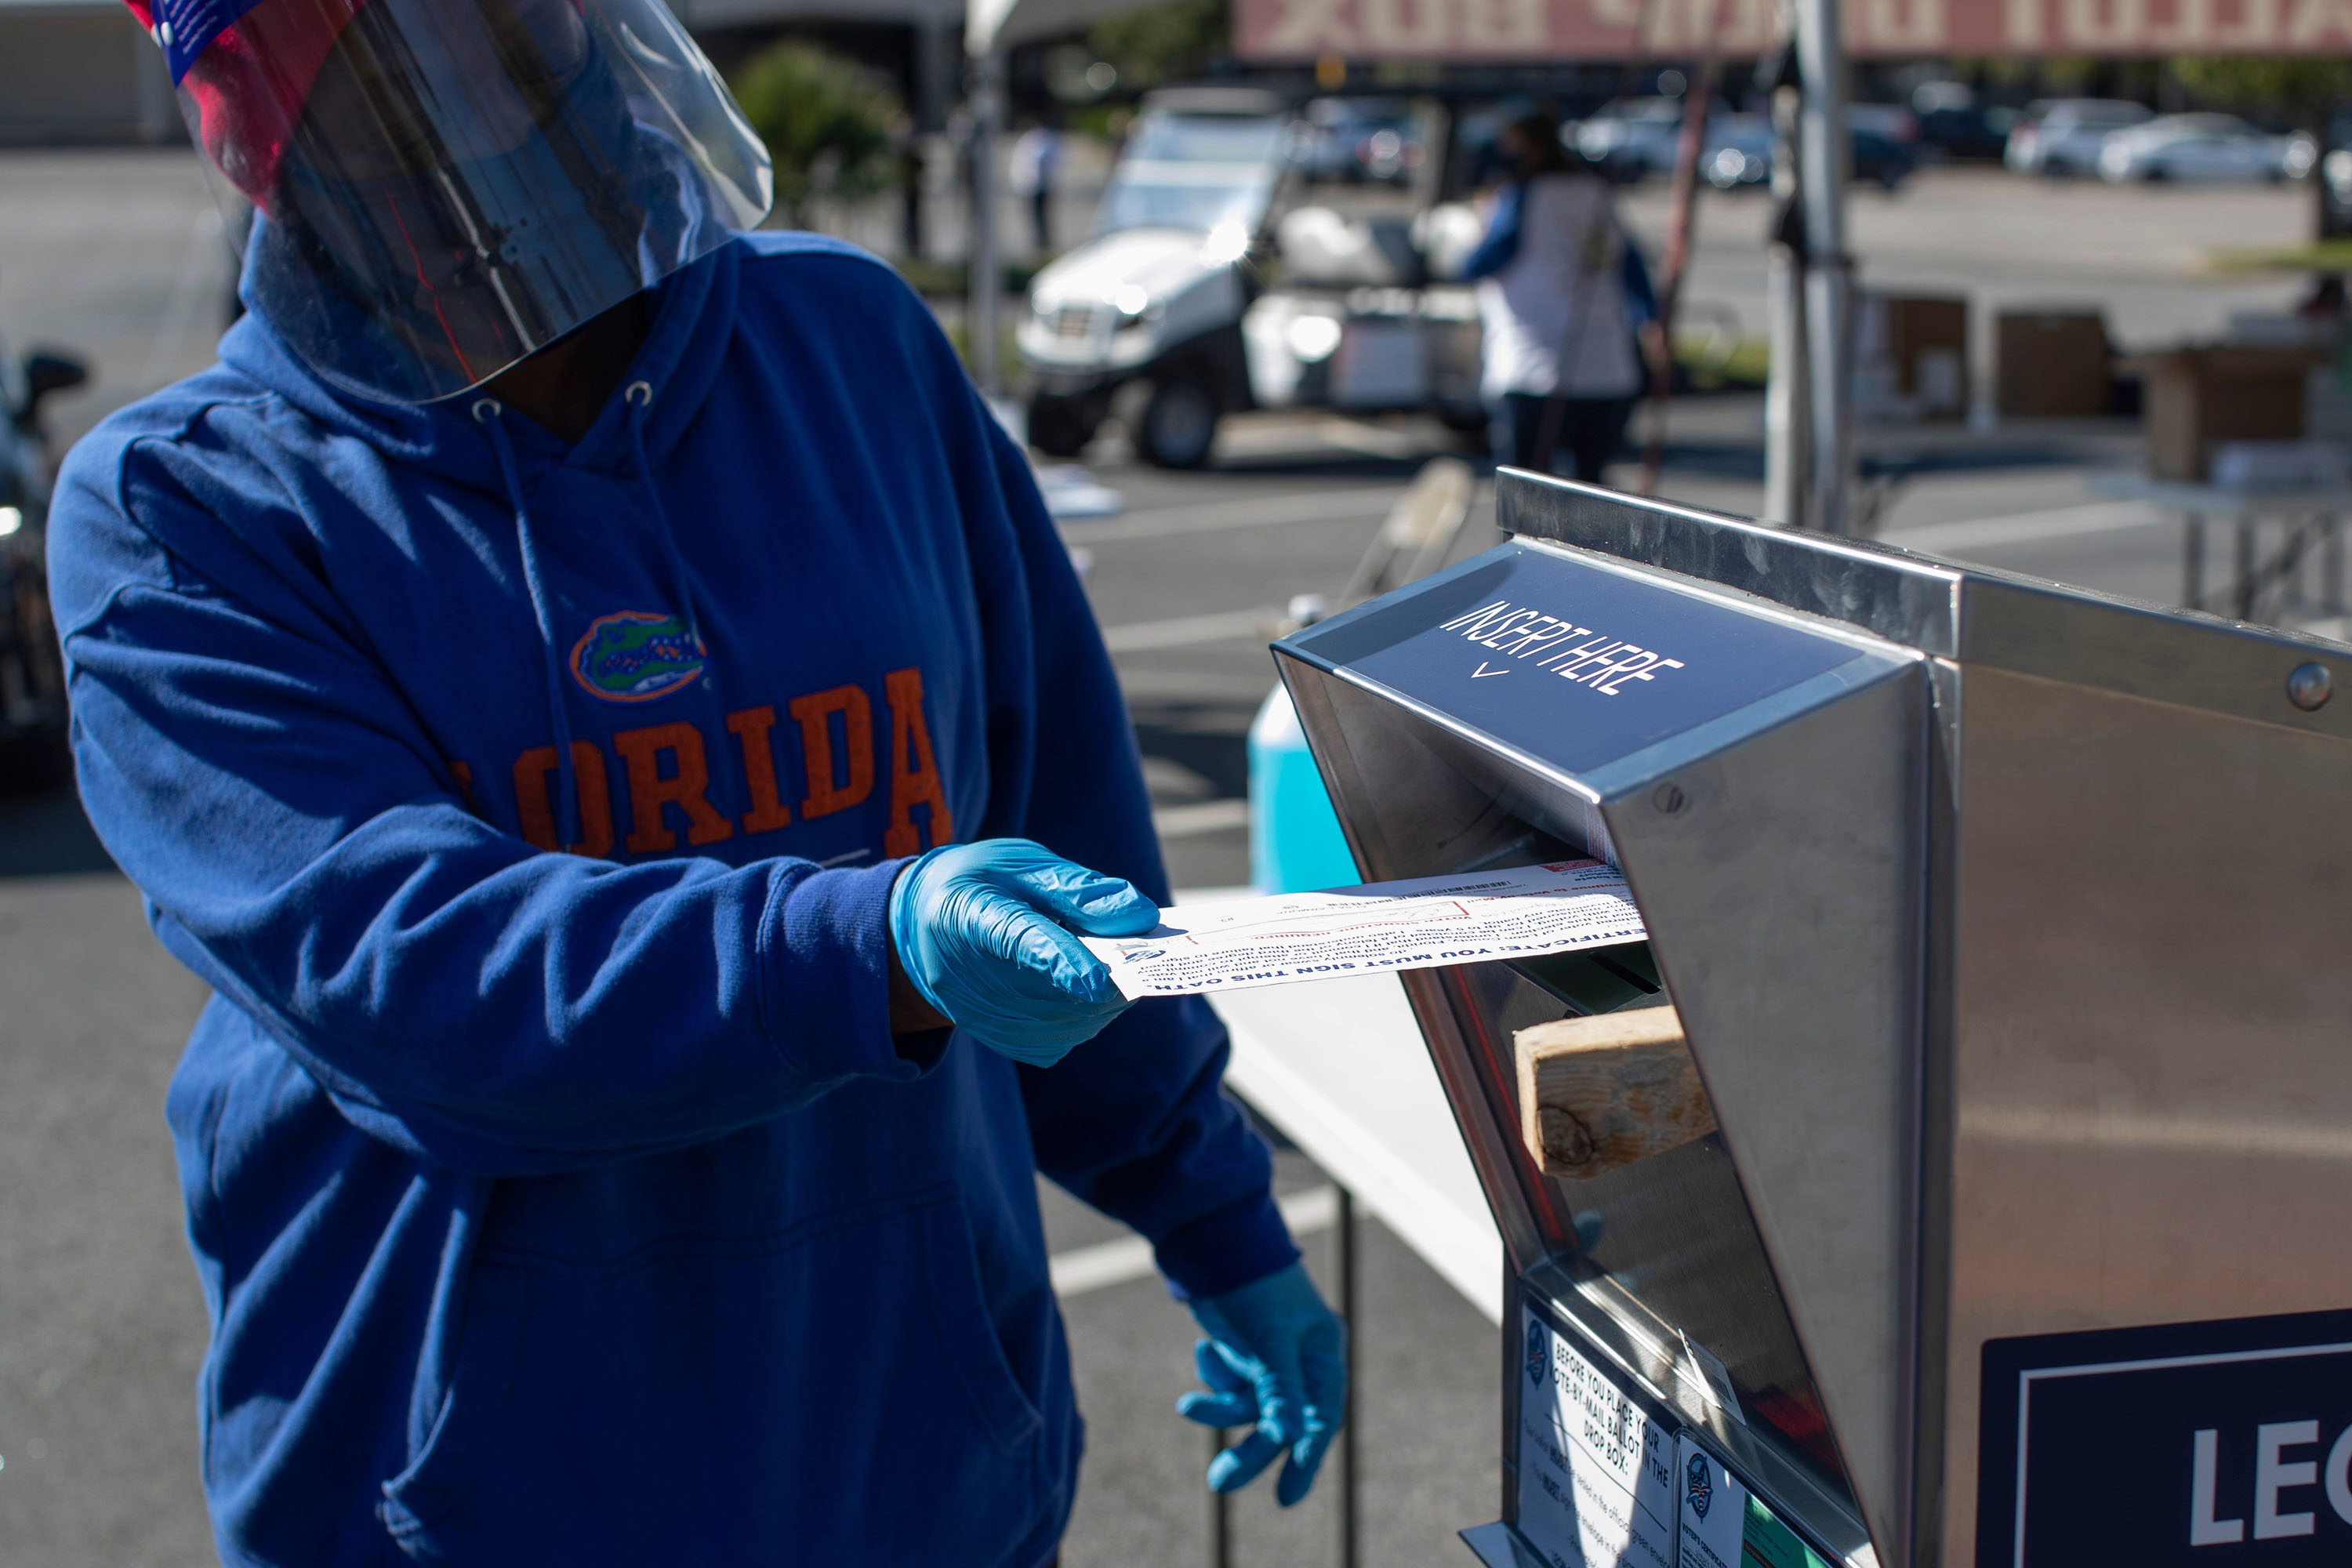 A poll worker collects vote-by-mail ballots at a drive-thru system set up in the parking lot of the Leon County Supervisor of Elections Office in Tallahassee, Florida, on Monday, November 2.